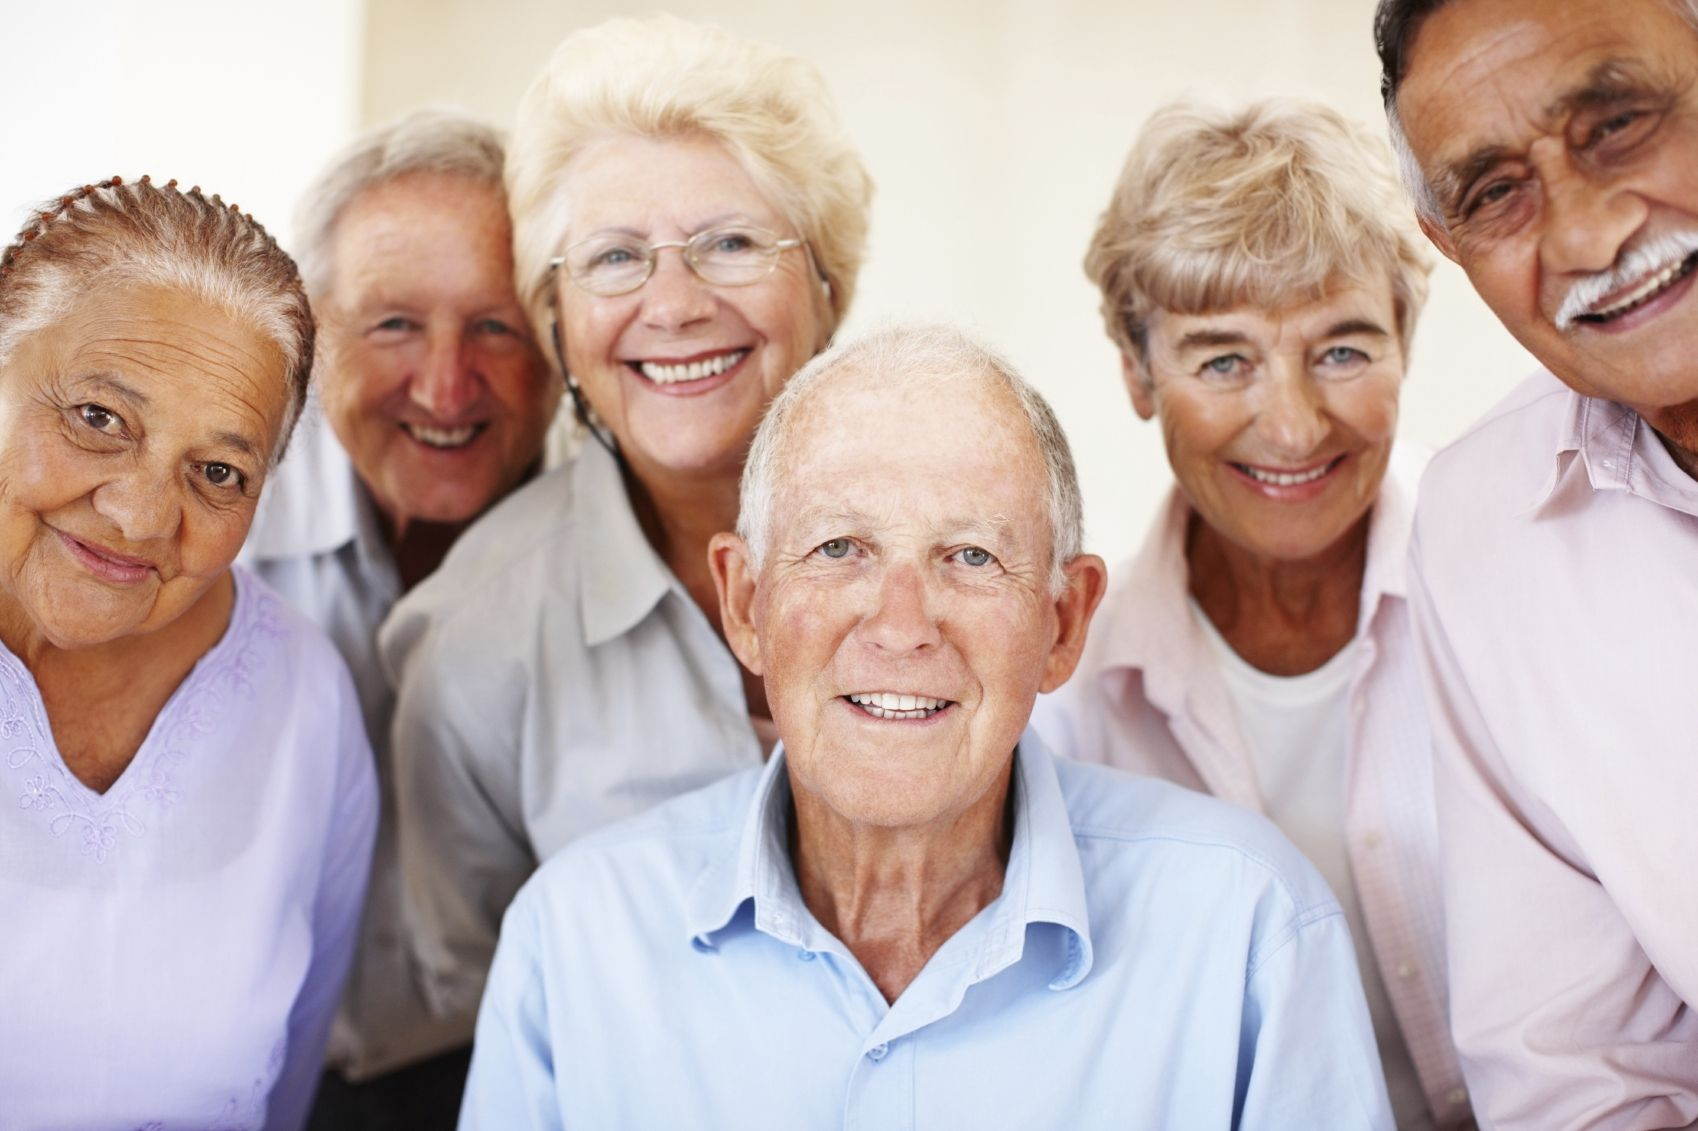 Life Insurance Quotes For Seniors Over 75 How Can You Get Life Insurance For Seniors Over 80 Years Old Http